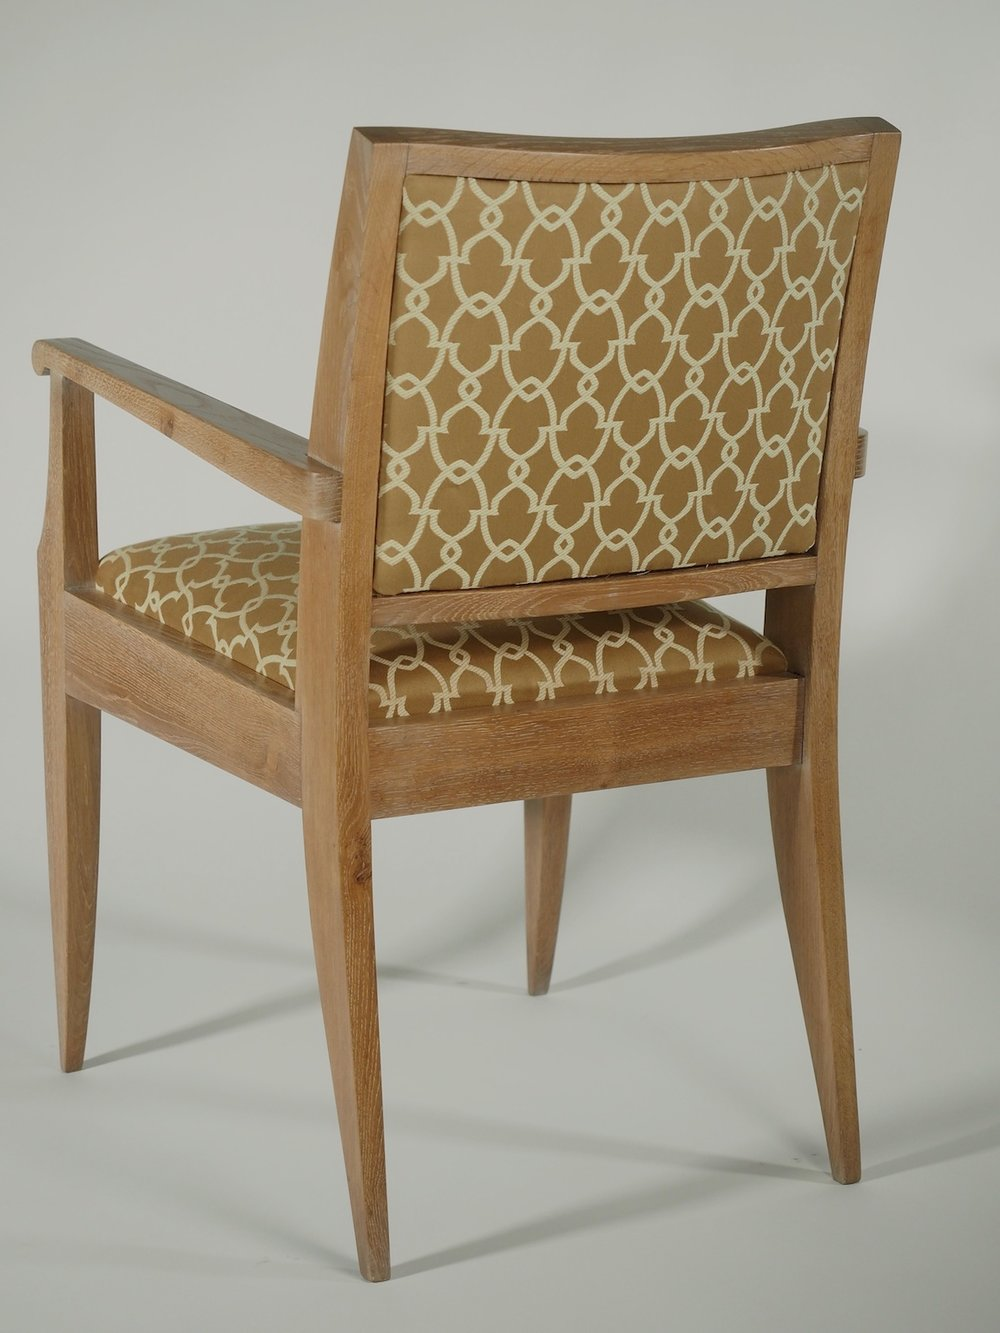 Dominique+pair+of+oak+armchairs+446.jpg